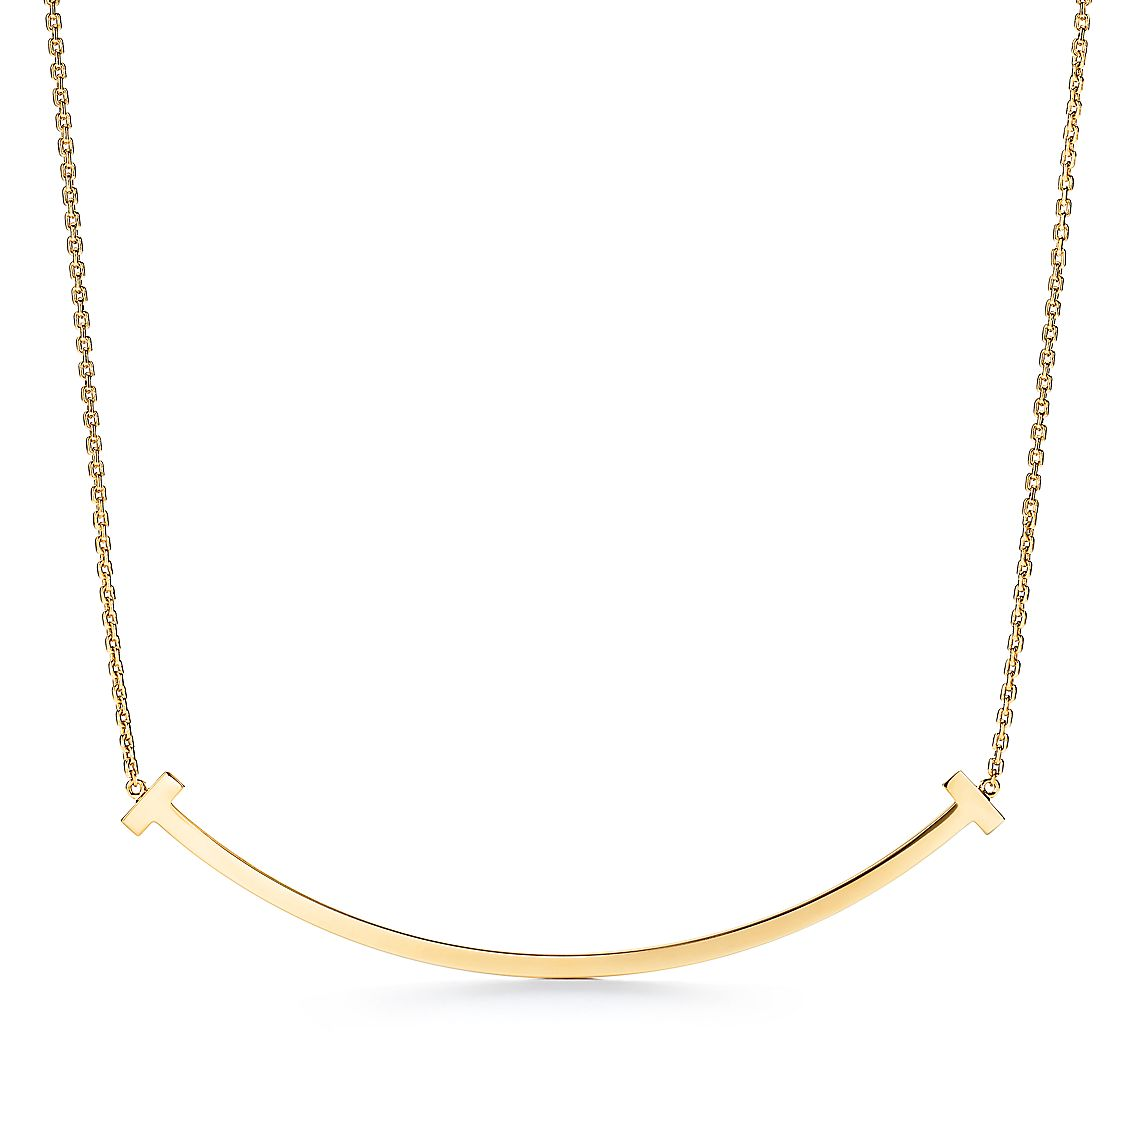 Tiffany T 												  												  											 										 									 									Ultra Smile Pendant by Tiffany T